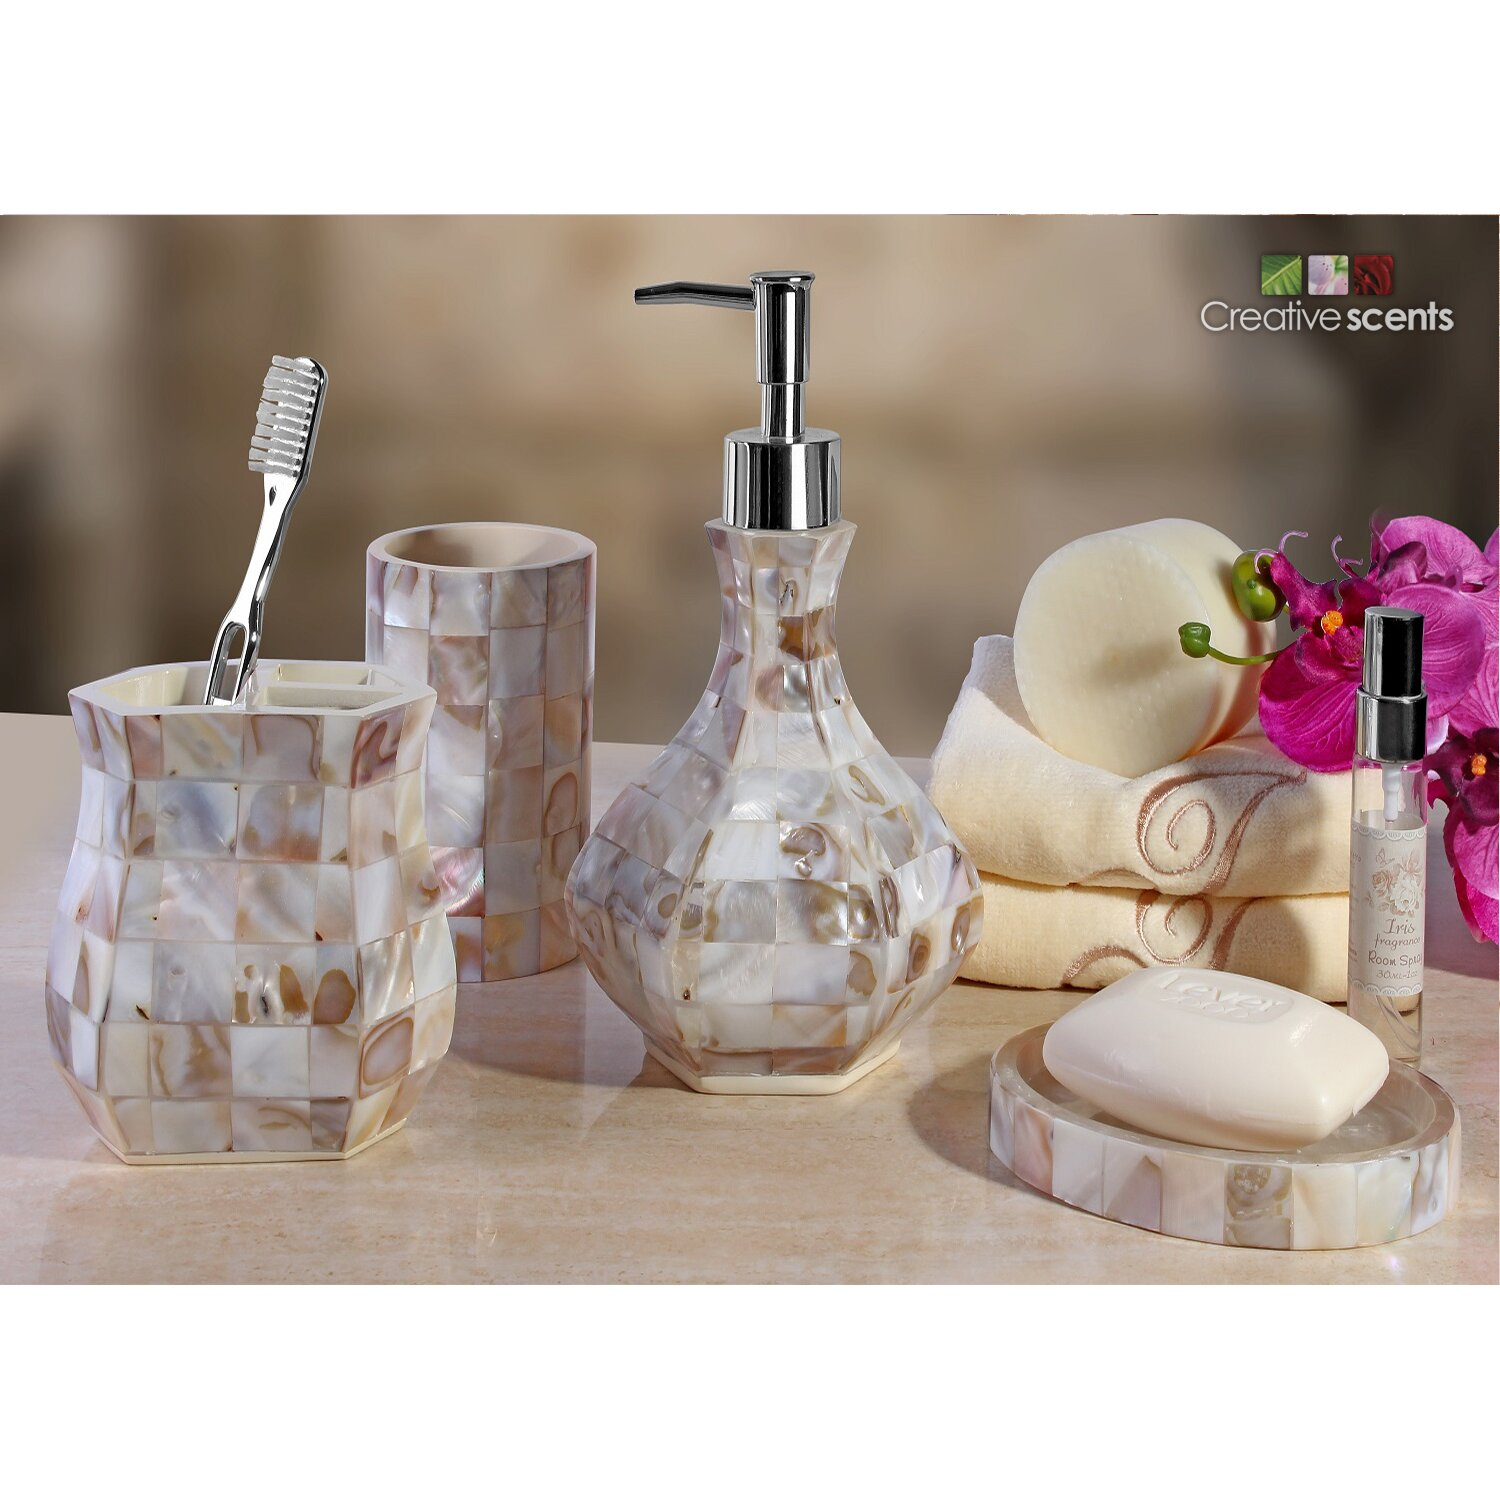 Creative scents milano 4 piece bathroom accessory set for Bathroom accessories list pdf